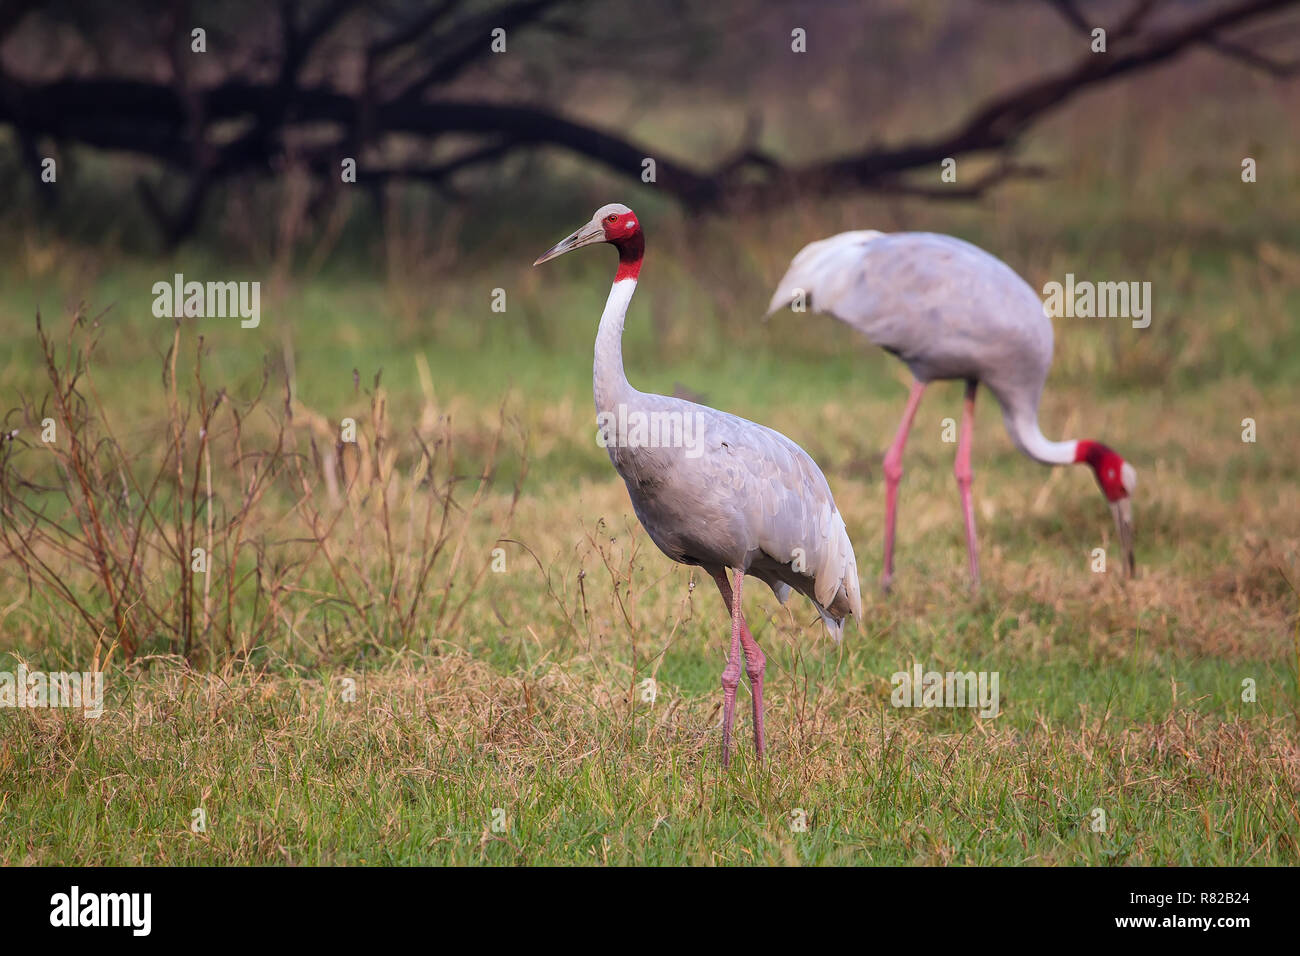 Sarus cranes (Grus antigone) in Keoladeo Ghana National Park, Bharatpur, Rajasthan, India. Sarus crane is the tallest of the flying birds. - Stock Image